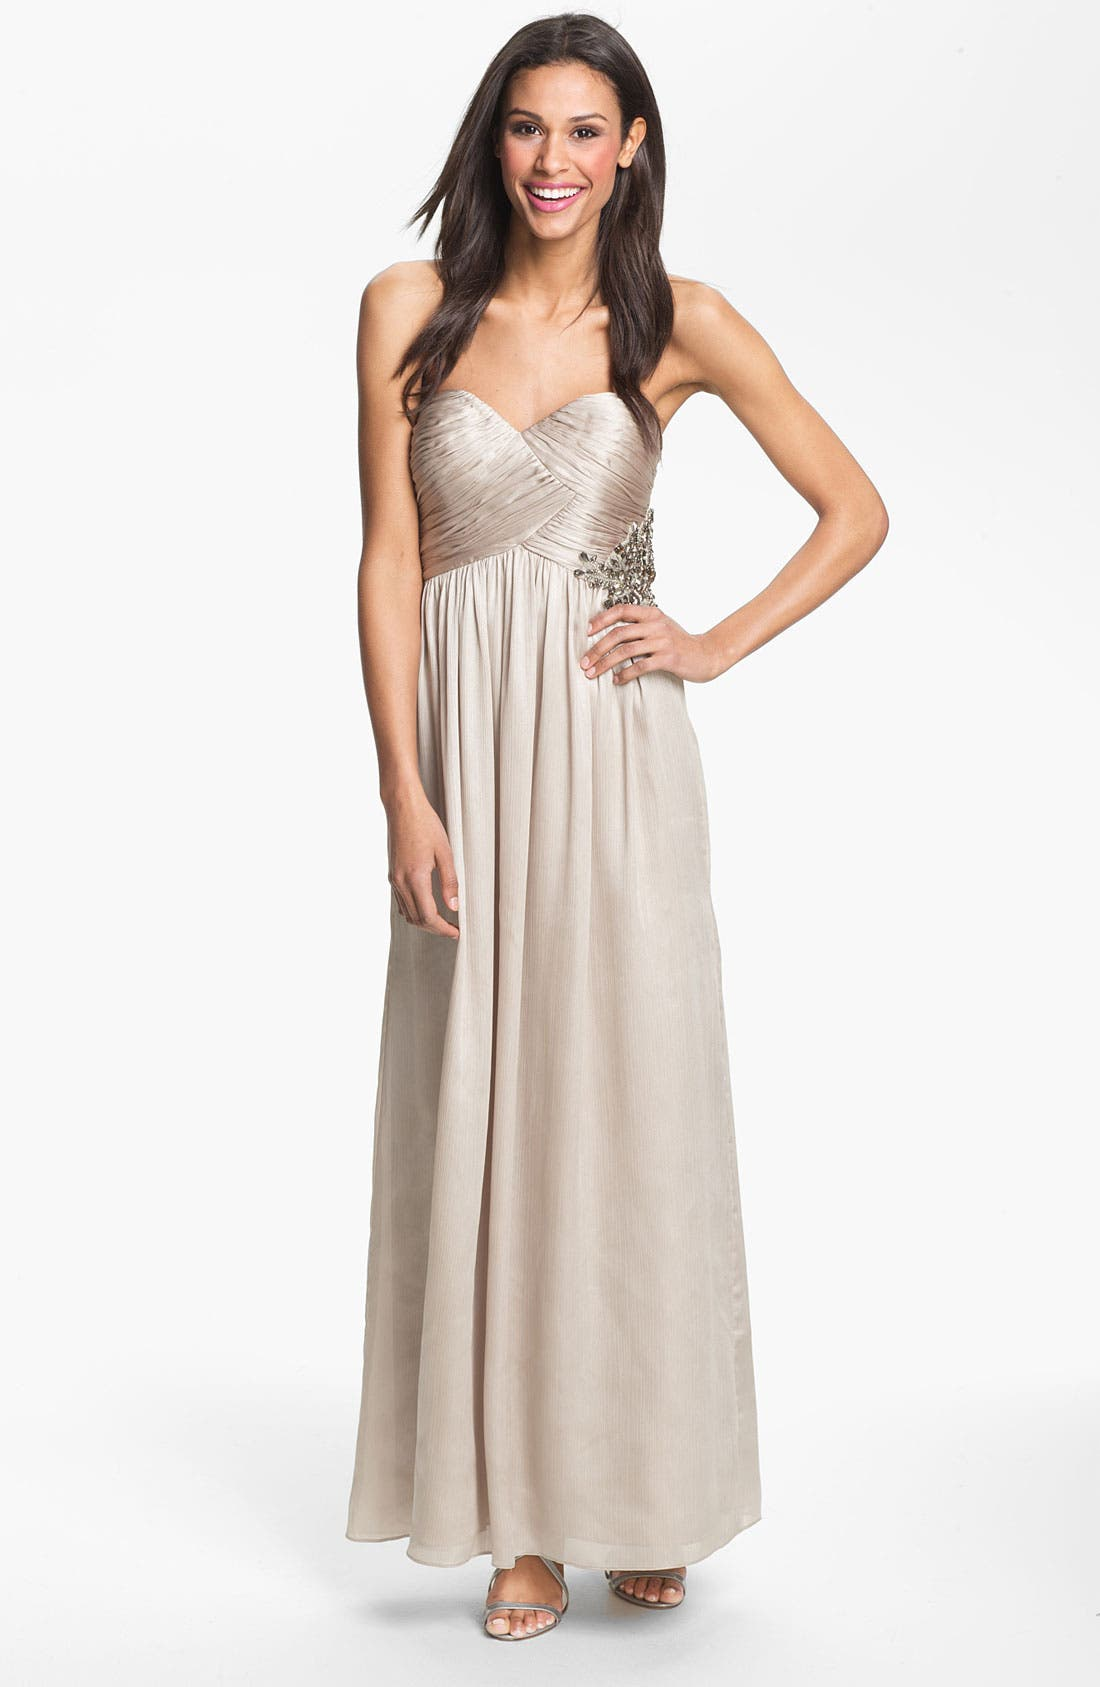 Alternate Image 1 Selected - Calvin Klein V-Neck Textured Metallic Jersey Gown